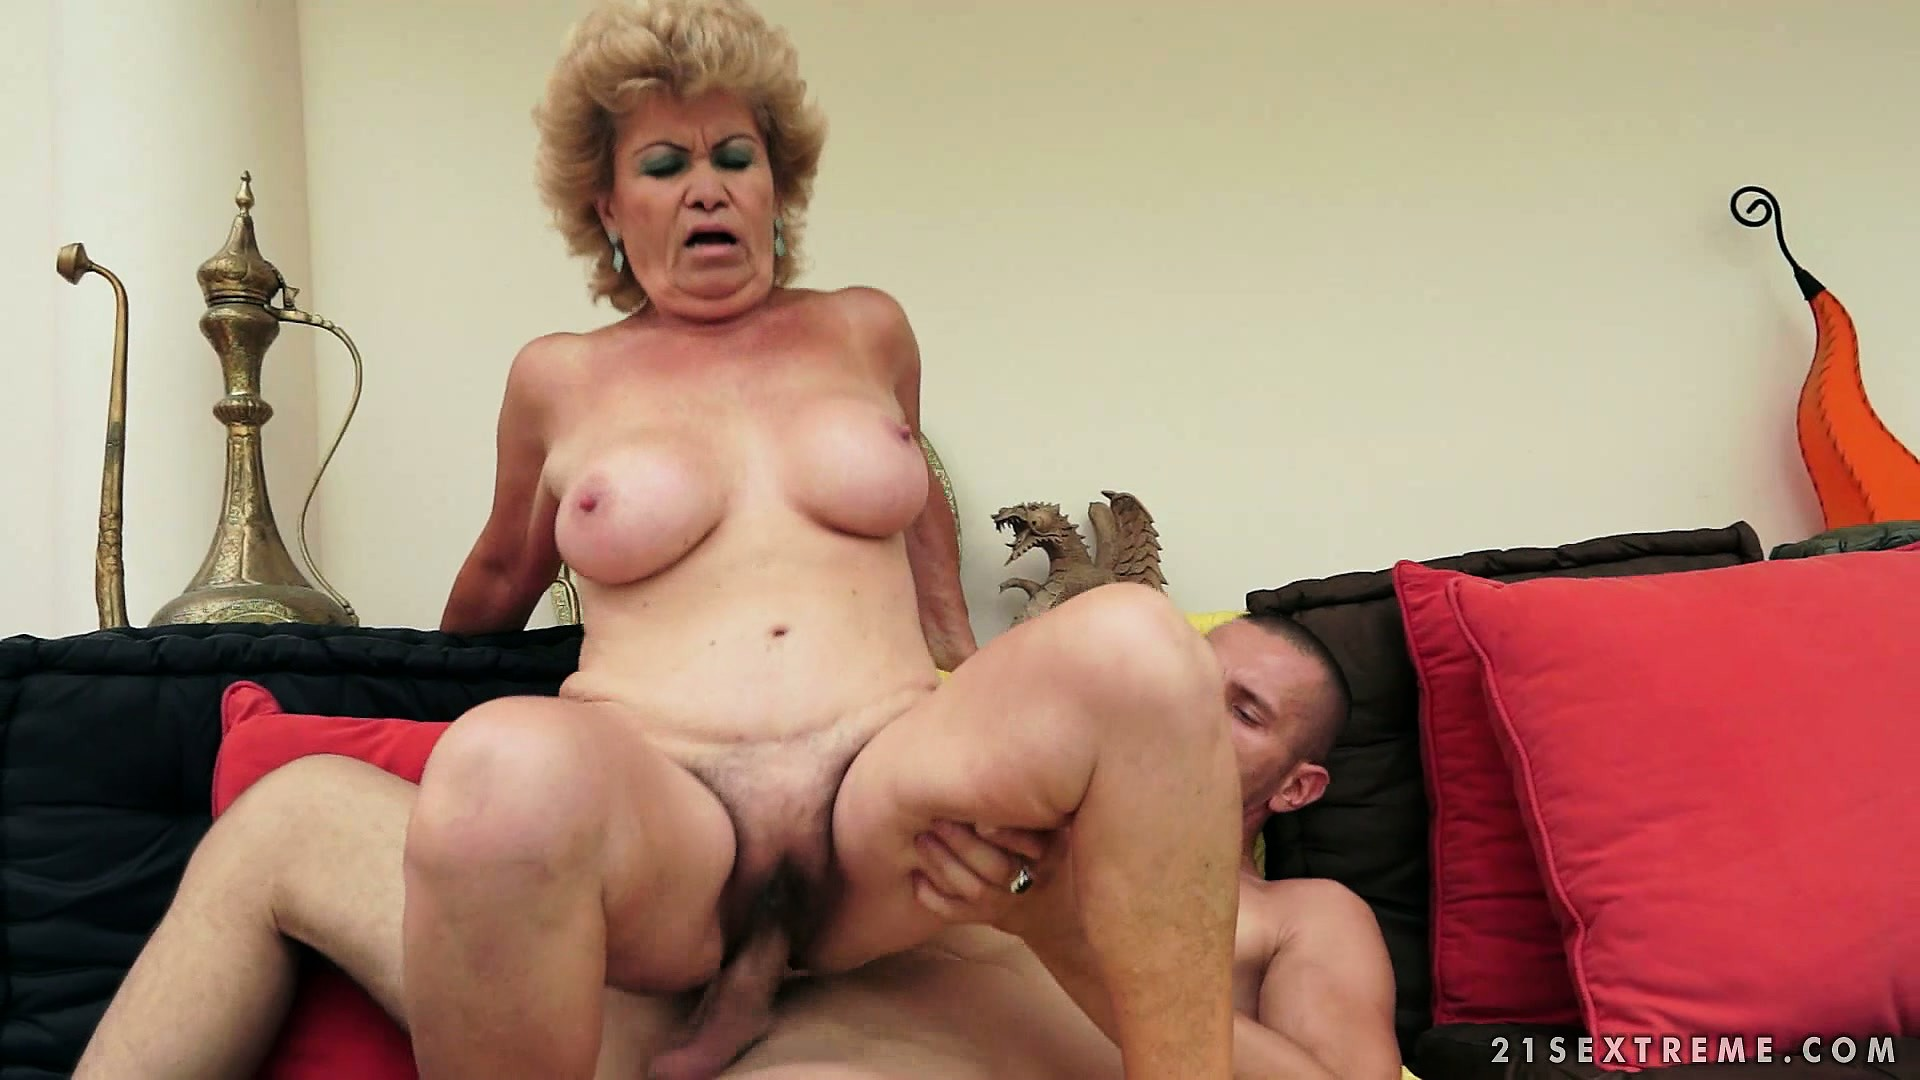 Porn Tube of Mature Slut Is Like A Good Bottle Of Wine - Gets Better With Age